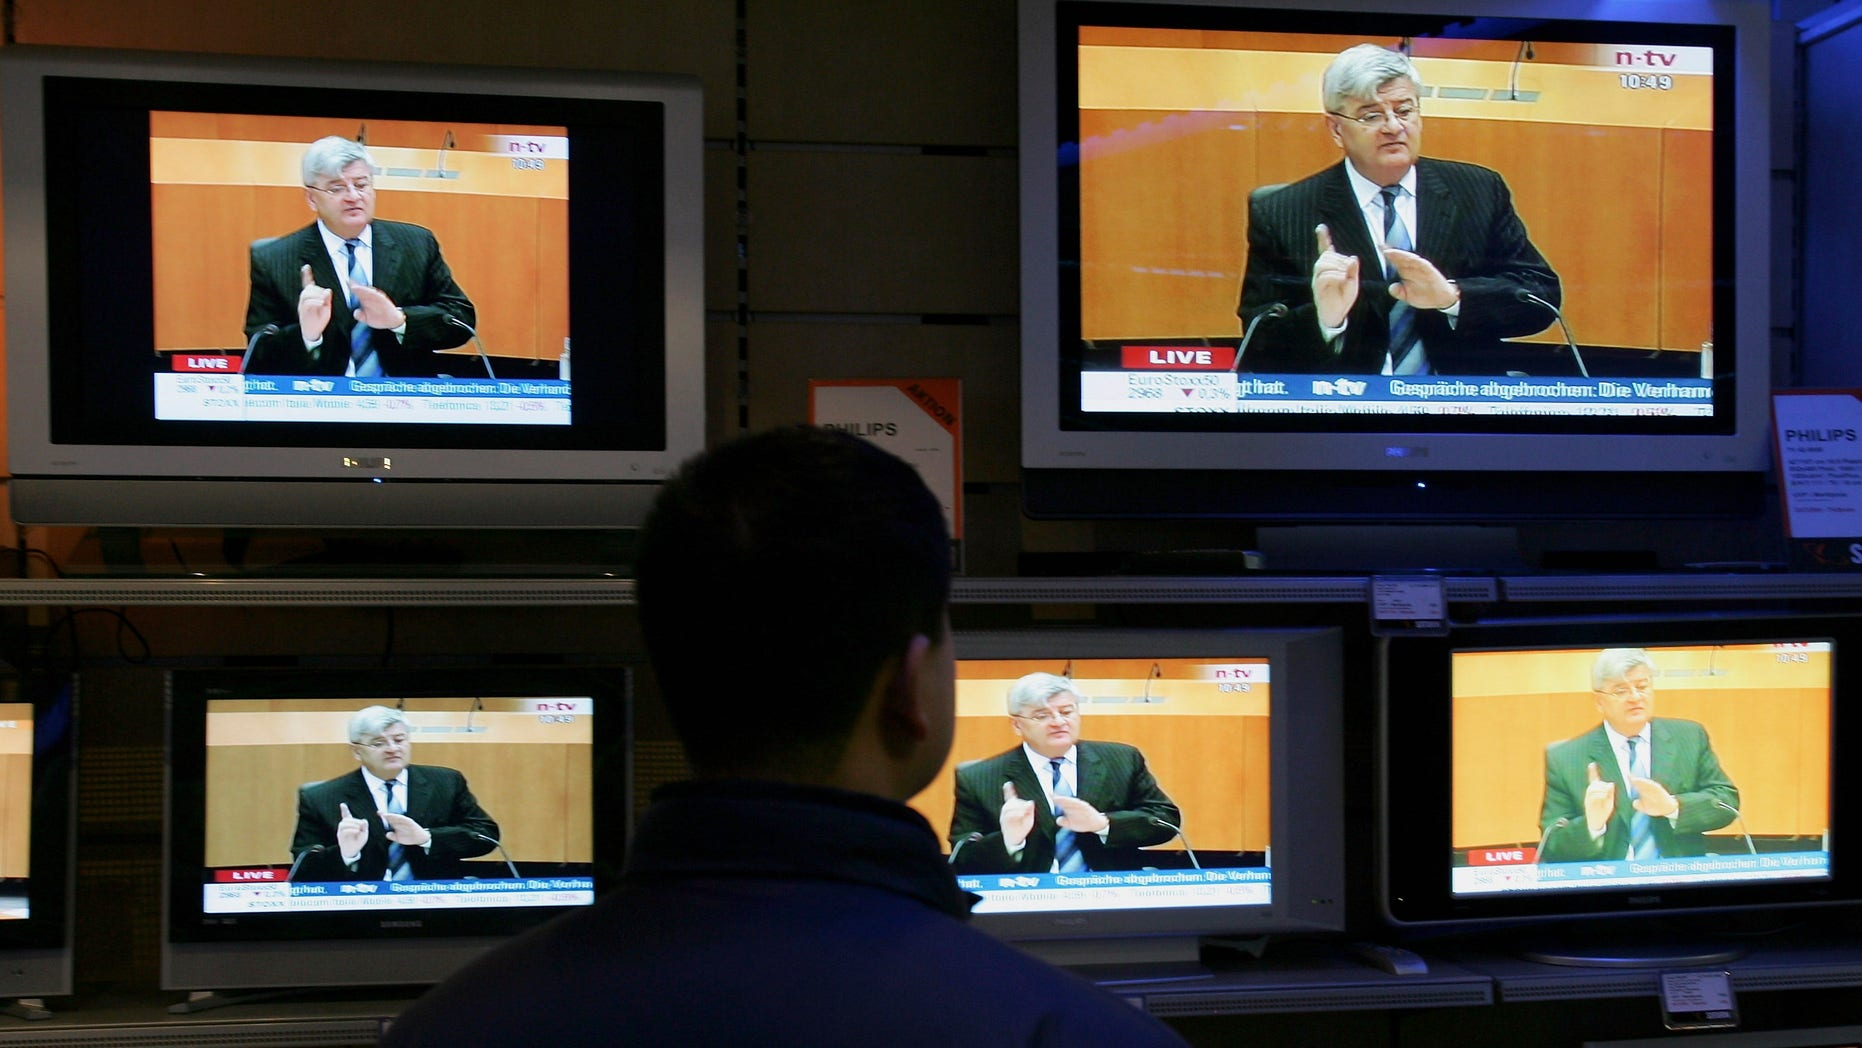 HAMBURG, GERMANY - APRIL 25:  A man watches TVs on sale in Hamburg show German Foreign Minister Joschka Fischer testifying live in front of the visa investigation committee on April 25, 2005 in Berlin, Germany. The committee, taking place in Berlin, is investigating allegations that an overly generous policy of granting visa applications at the German embassy in Kiev allowed thousands of people to enter the European Union, much to the benefit of people smugglers and other criminal gangs. (Photo by Andreas Rentz/Getty Images)